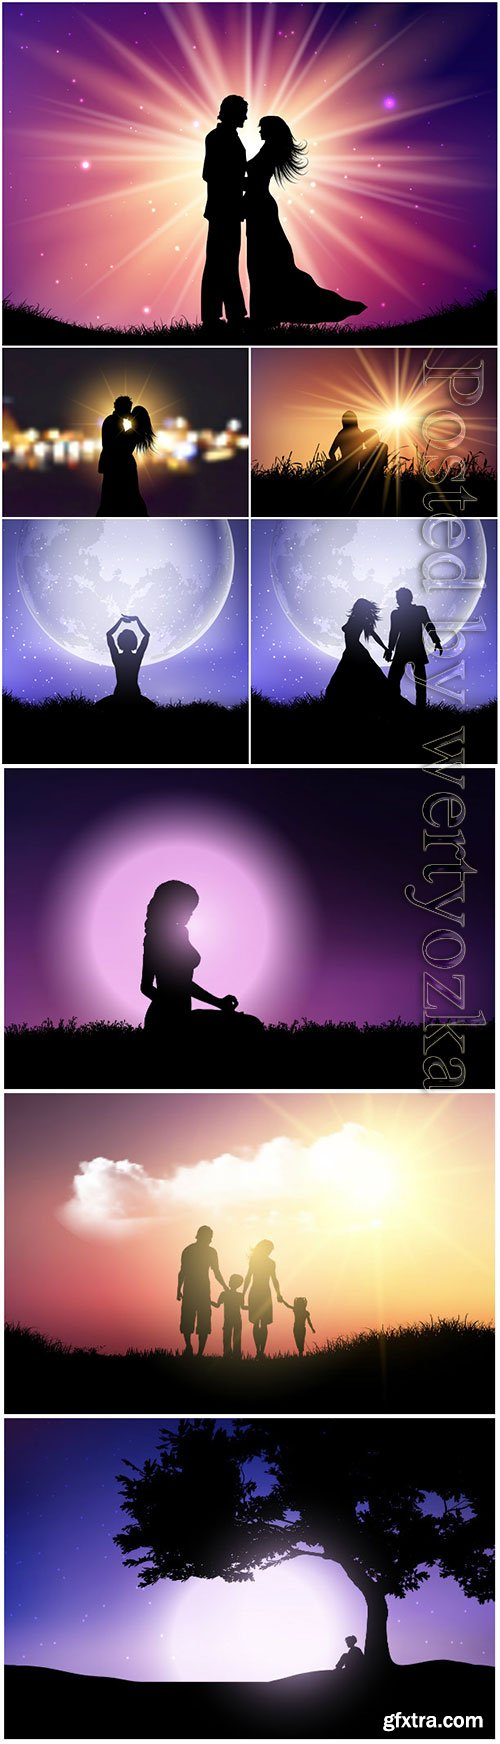 Silhouettes of people on a background of the night sky